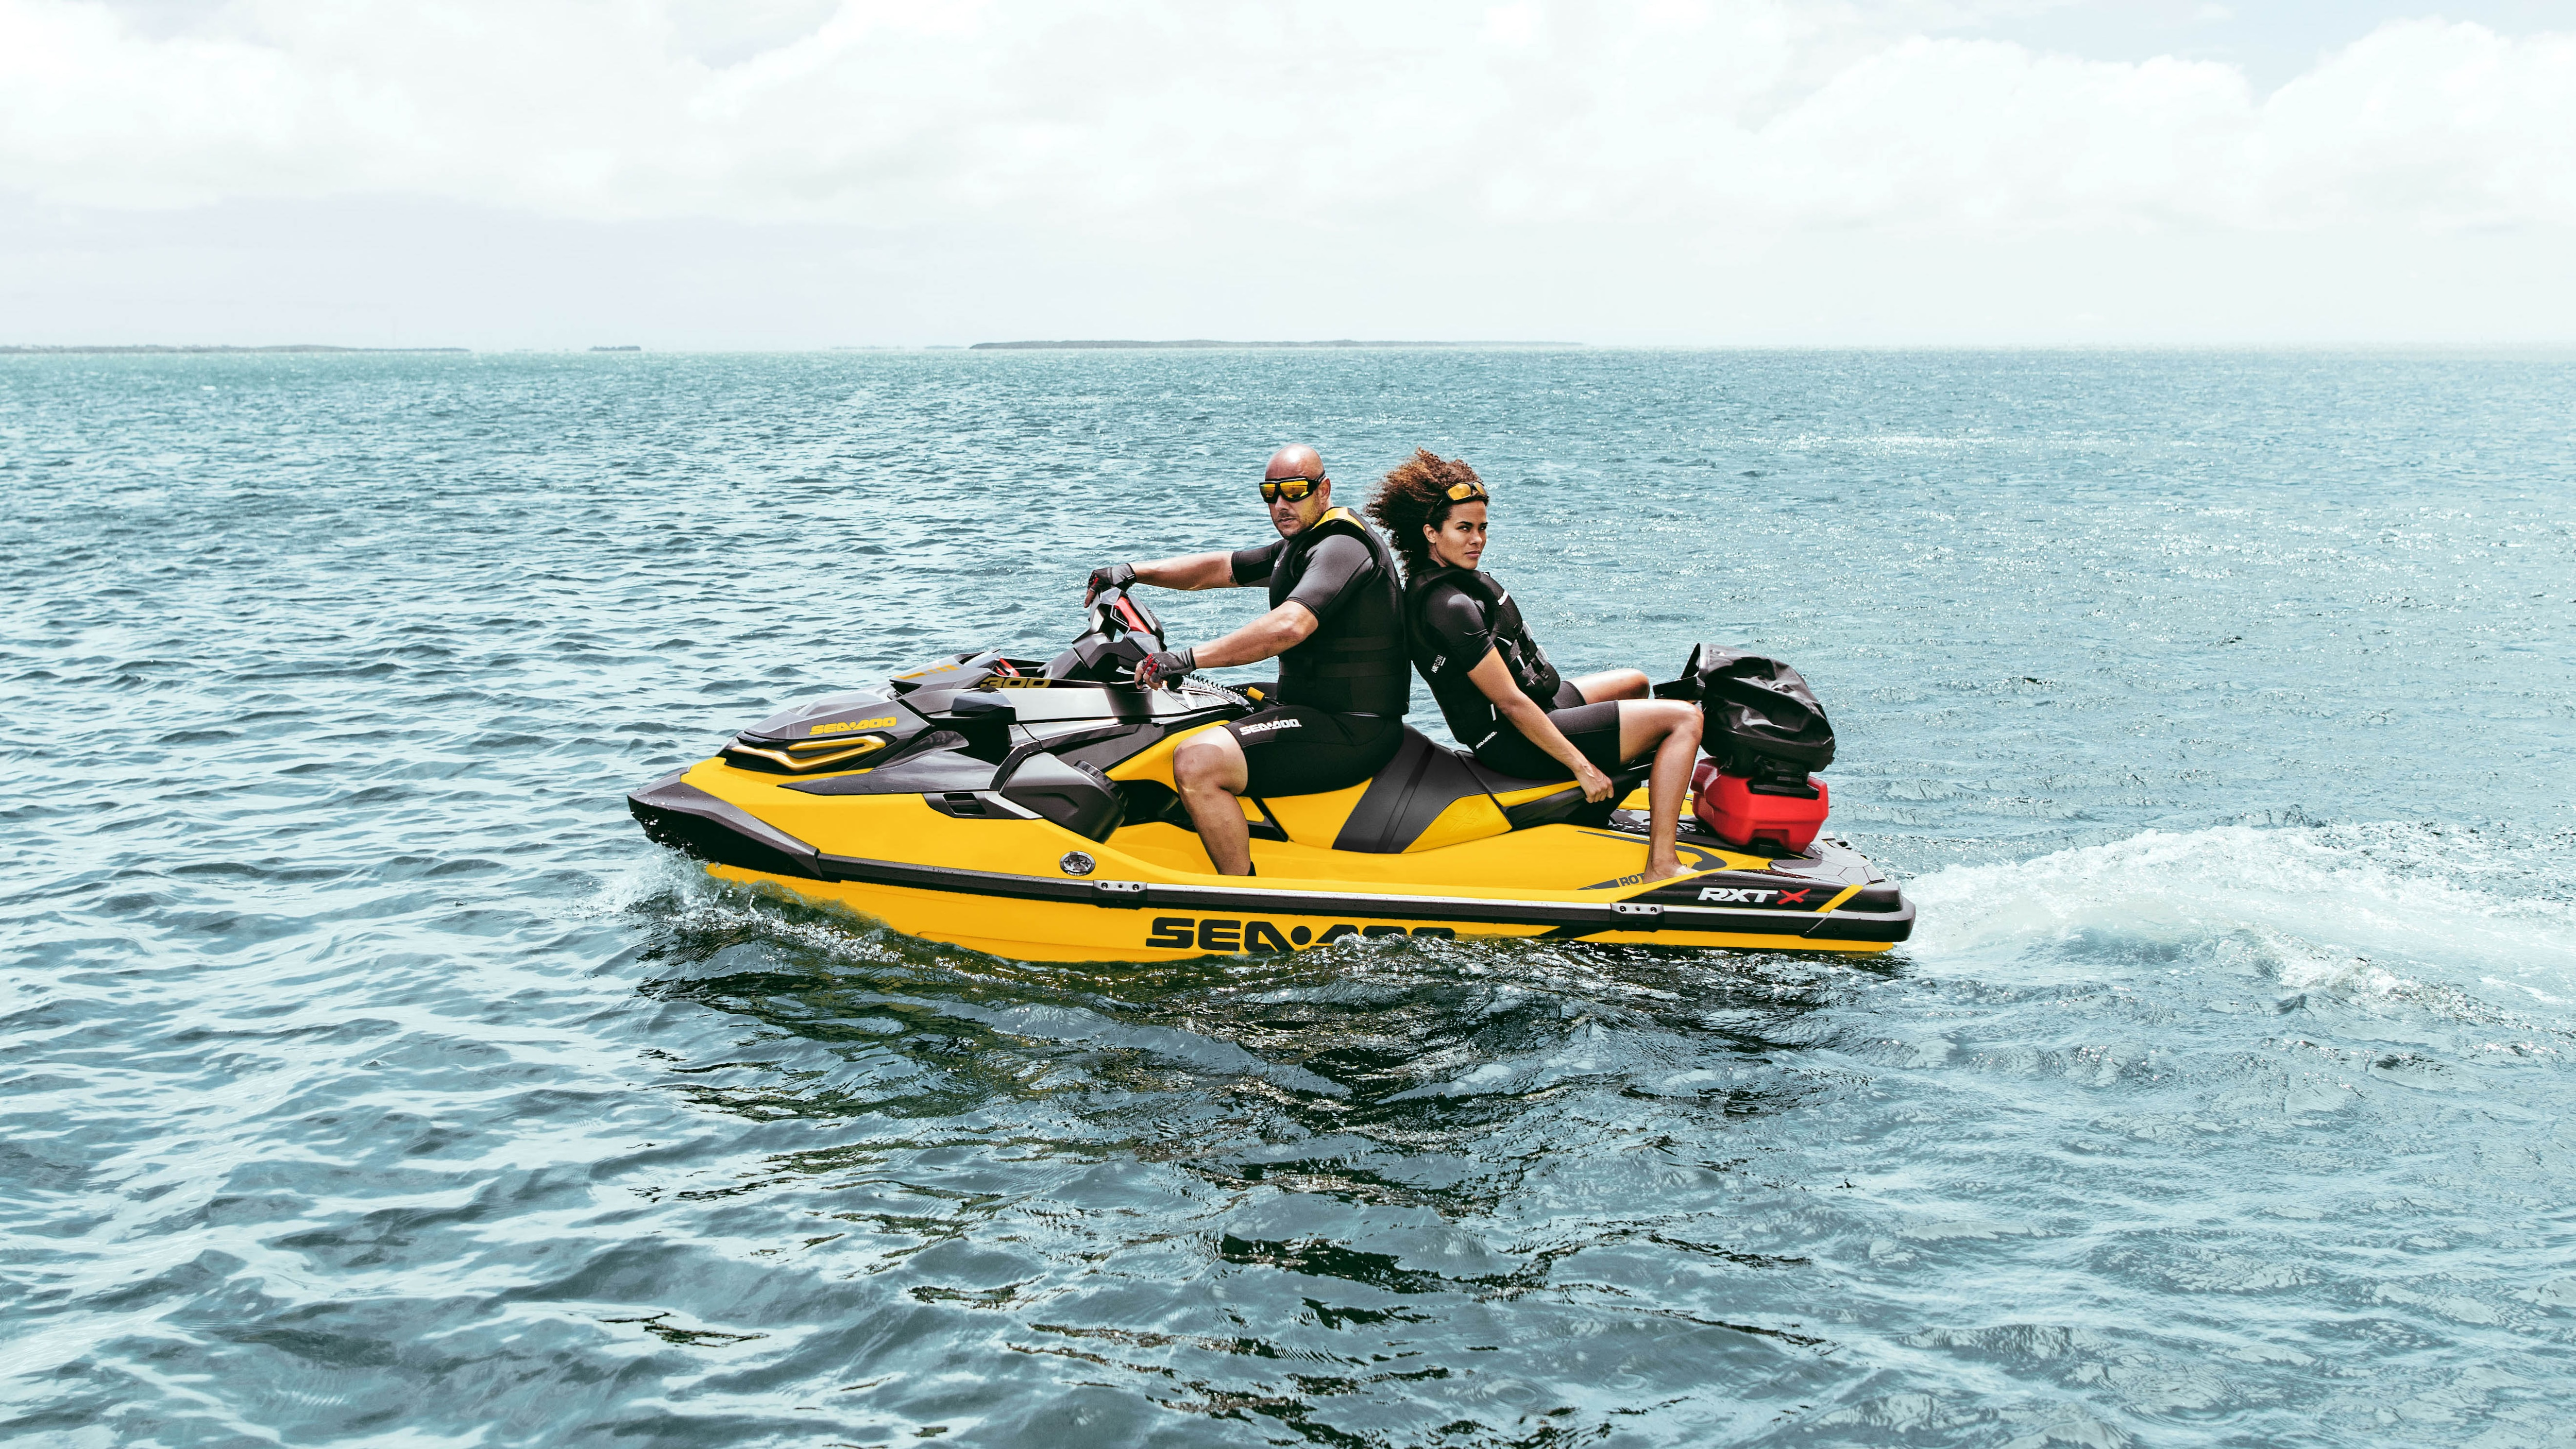 Couple riding a Sea-Doo RXT-X with the Cargo LinQ system